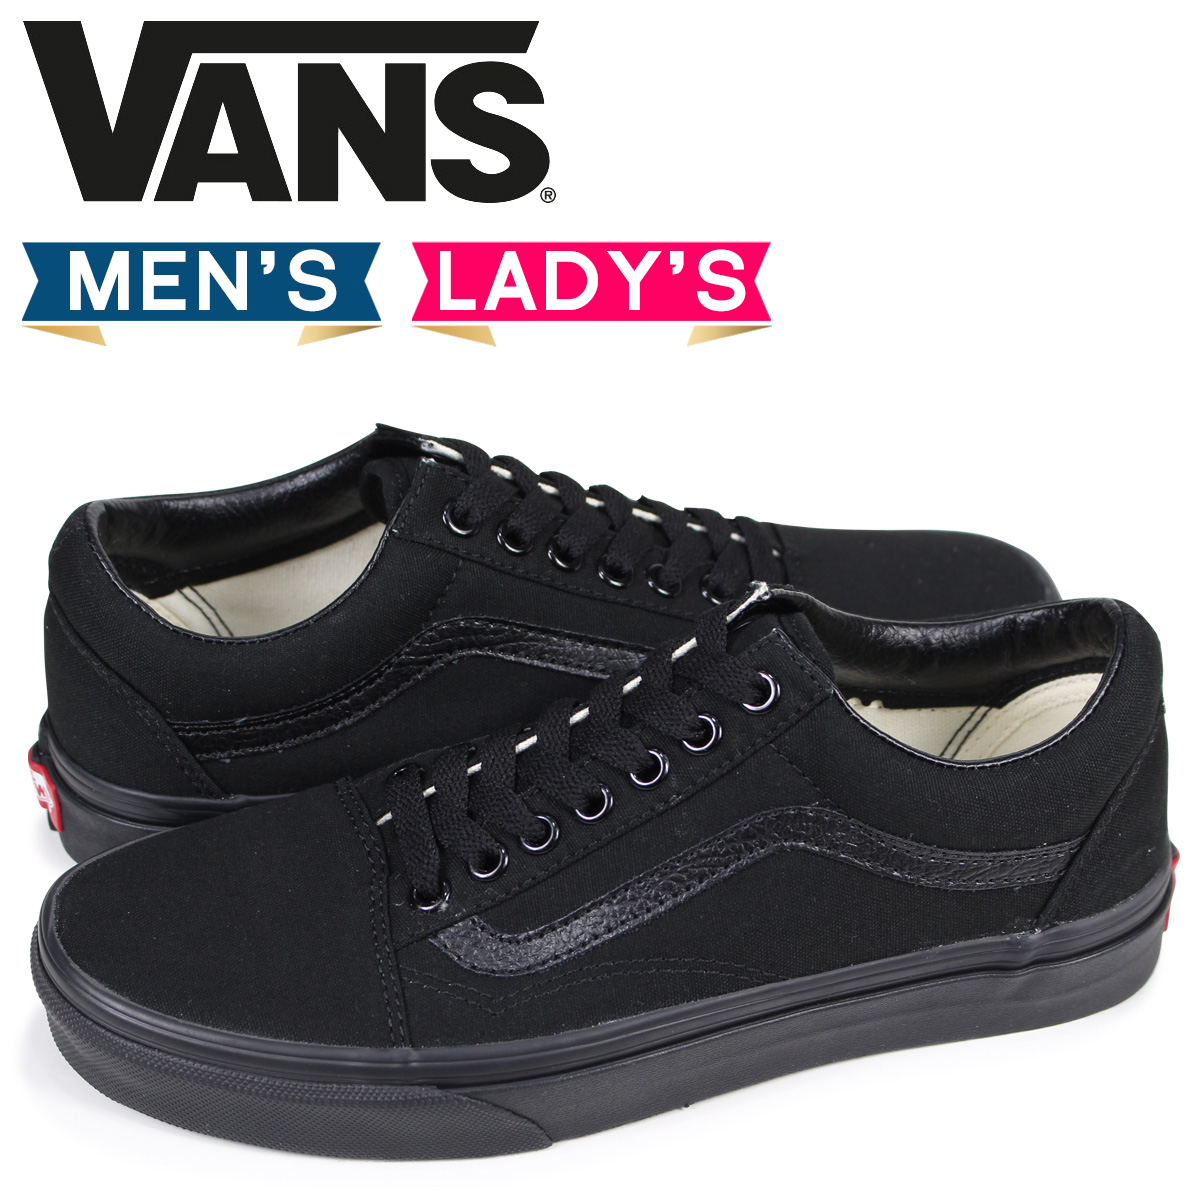 7b2d4a9f2e VANS old school sneakers men gap Dis vans station wagons OLD SKOOL  VN000D3HBKA black  3 1 Shinnyu load